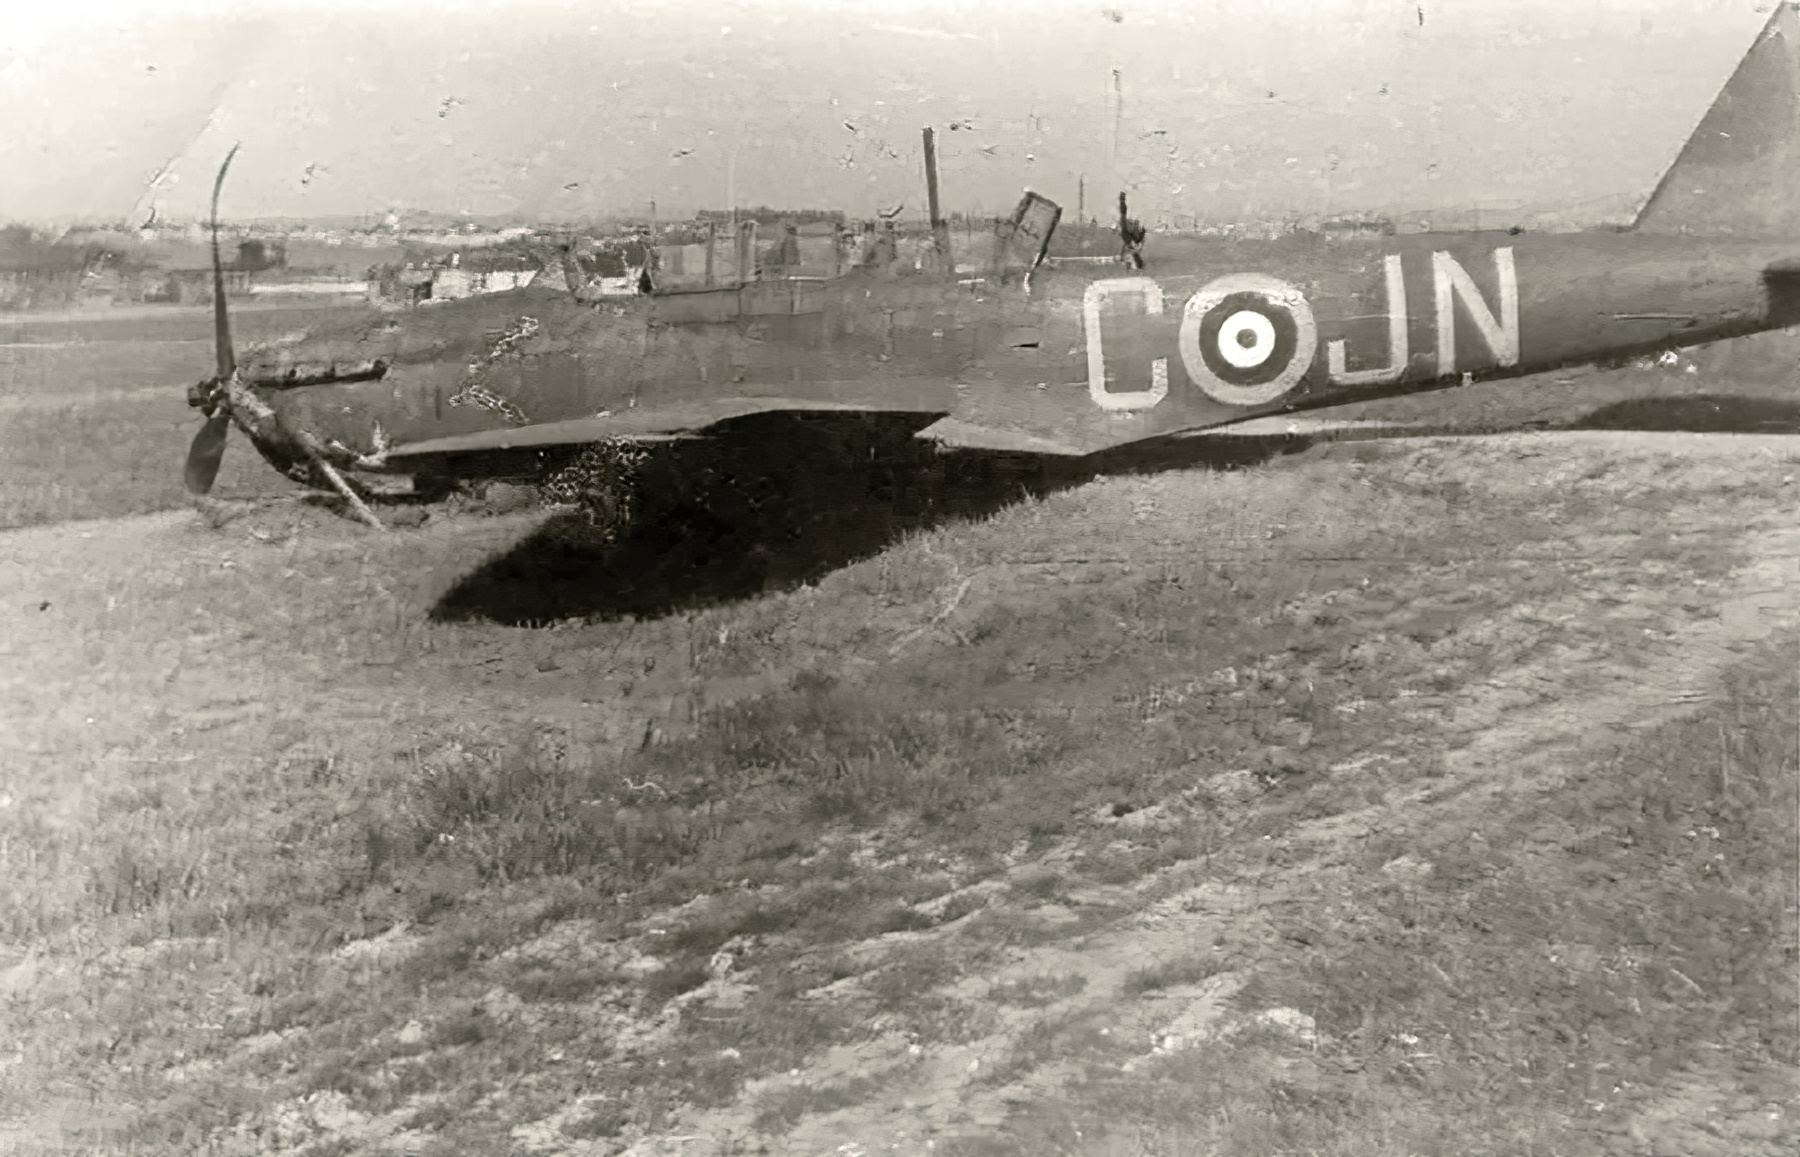 Fairey Battle RAF 150Sqn JNC force landed during France May Jun 1940 01